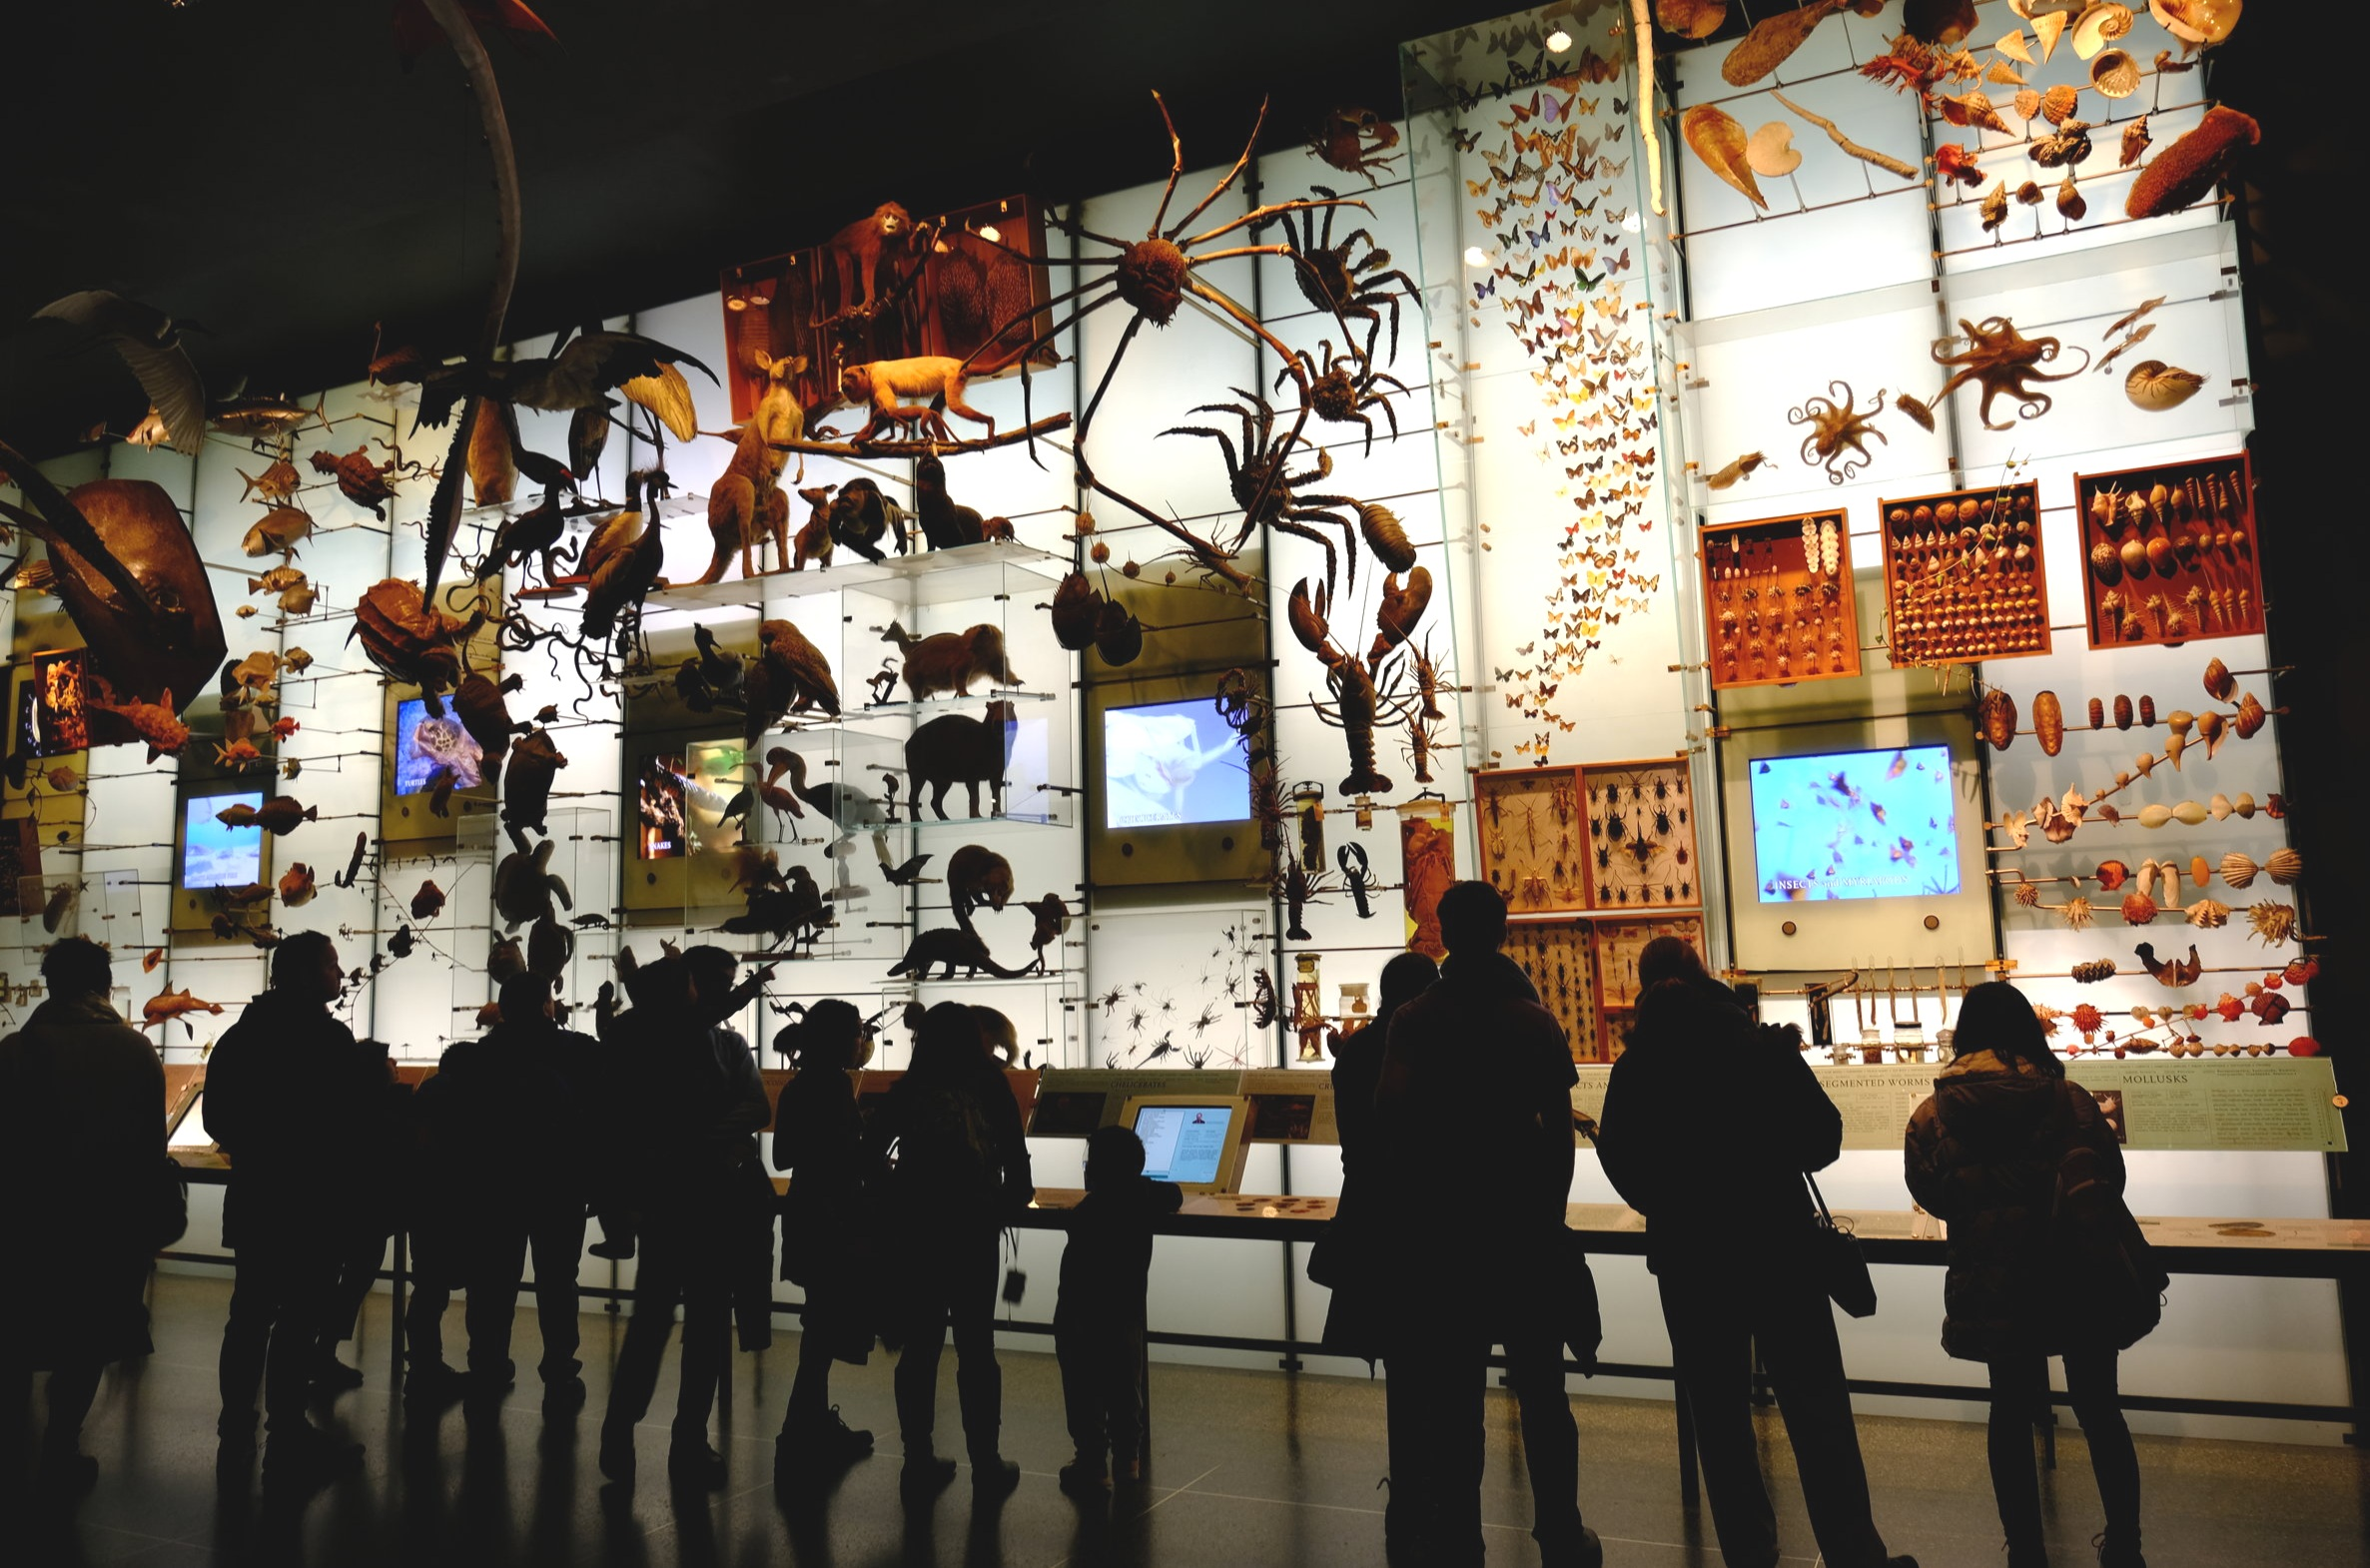 Visitors in the American Museum of Natural History looking at a wall of videos, spiders, and other artifacts. Photo:   tosh chiang